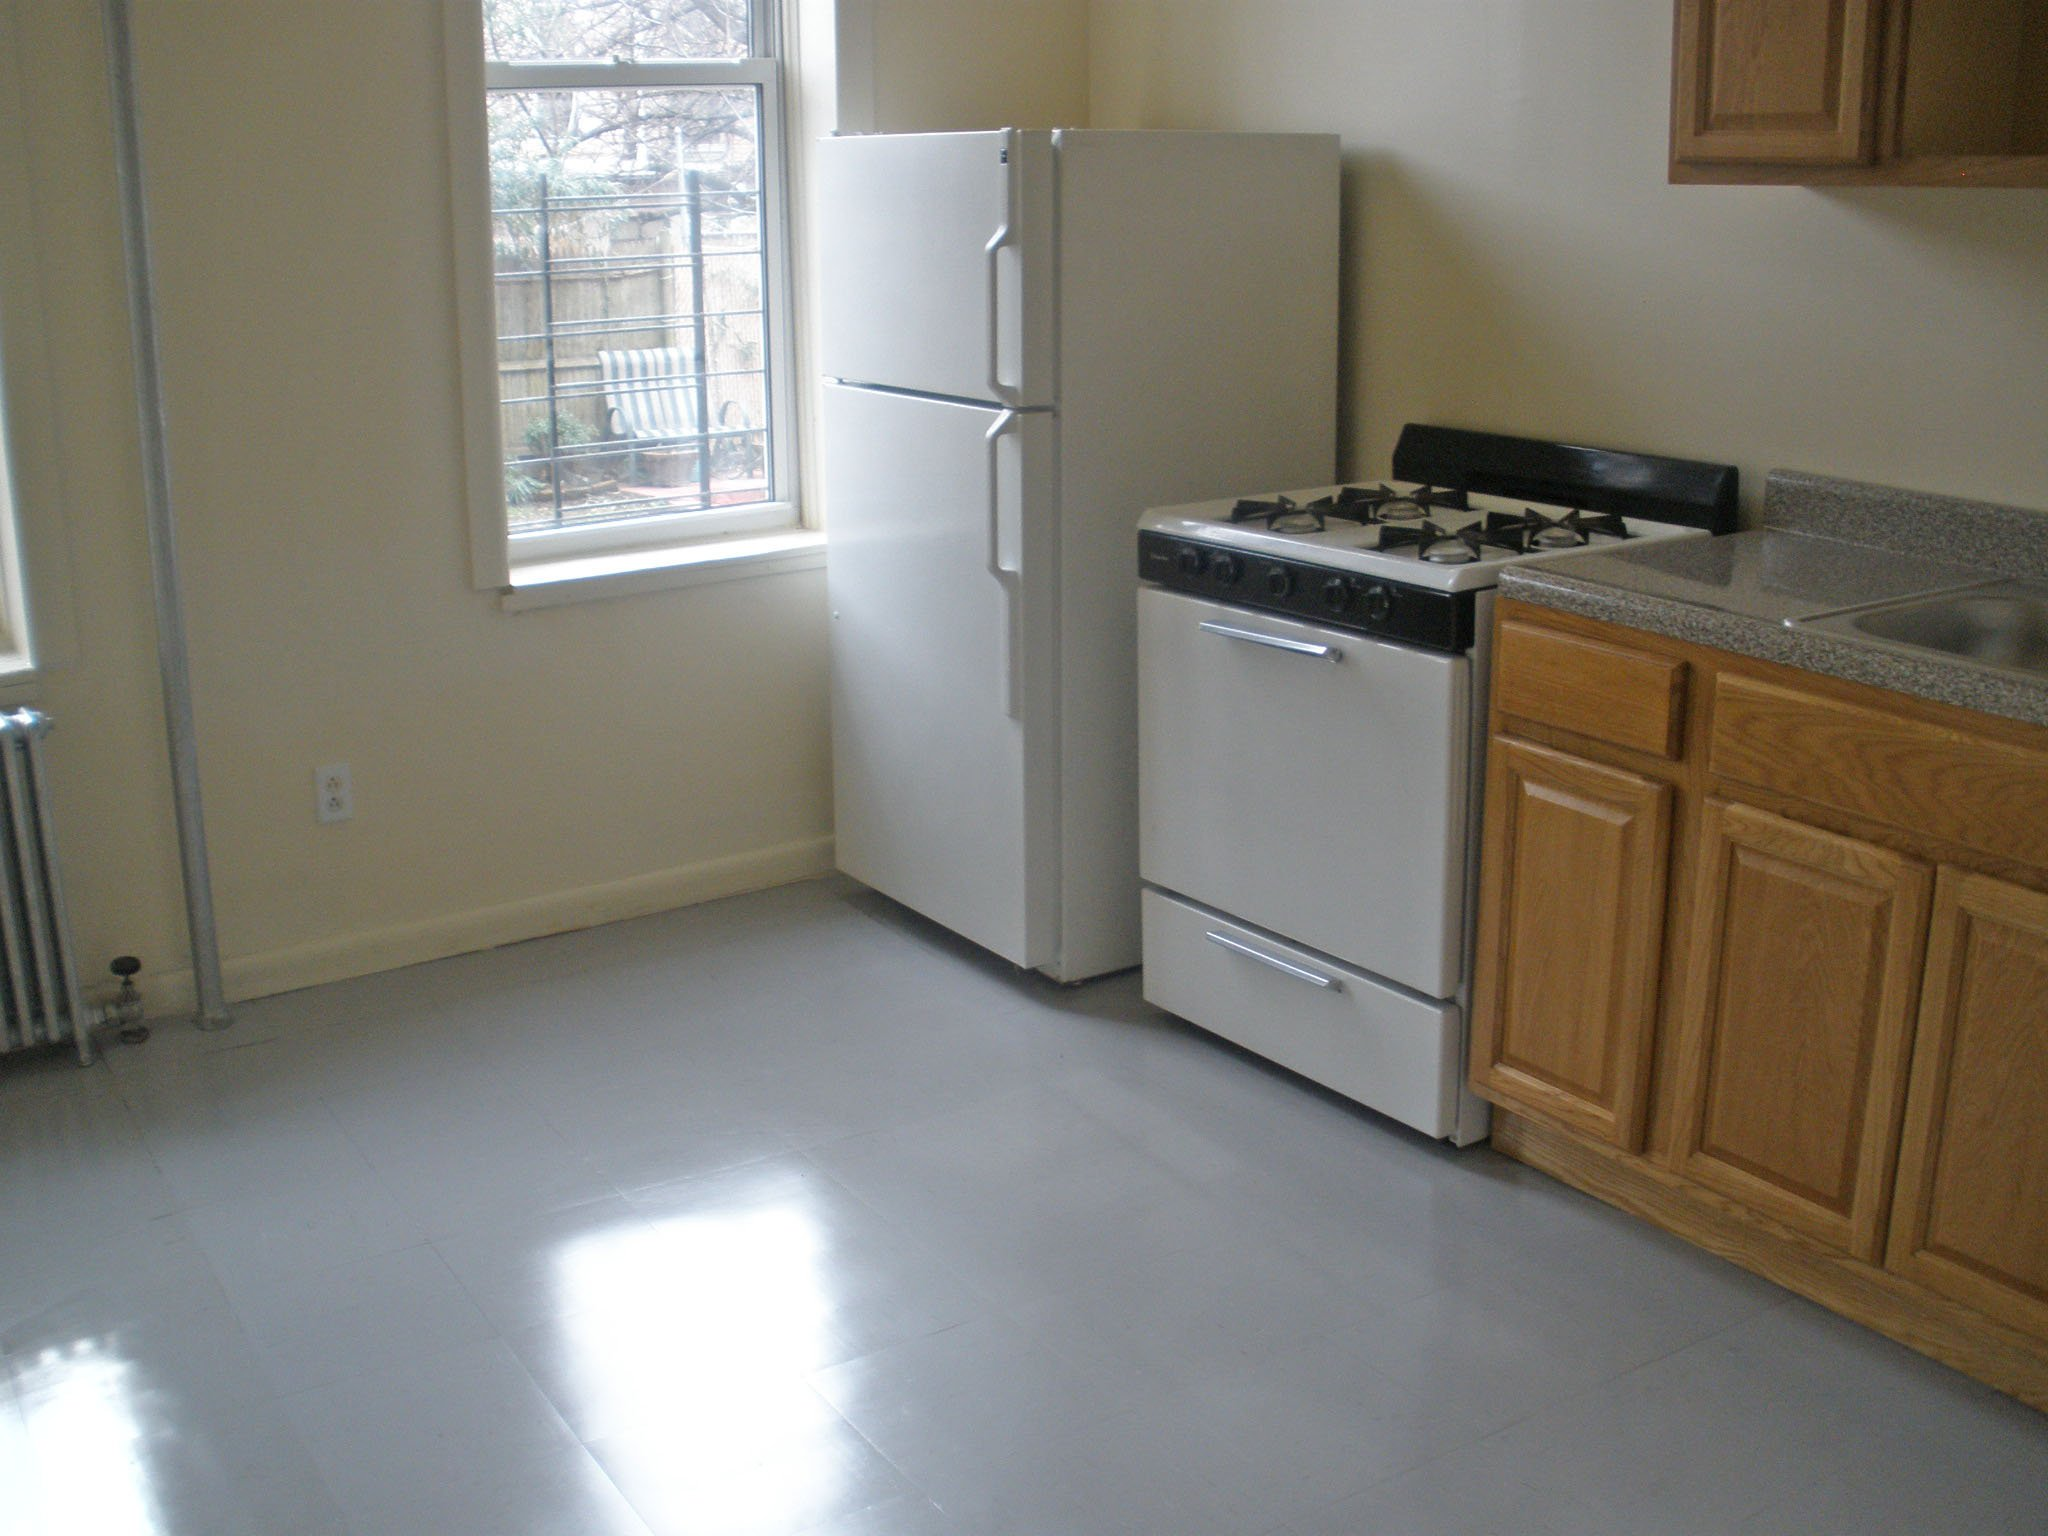 bedford stuyvesant 2 bedroom apartment for rent brooklyn For2 Bedroom Apartments For Rent